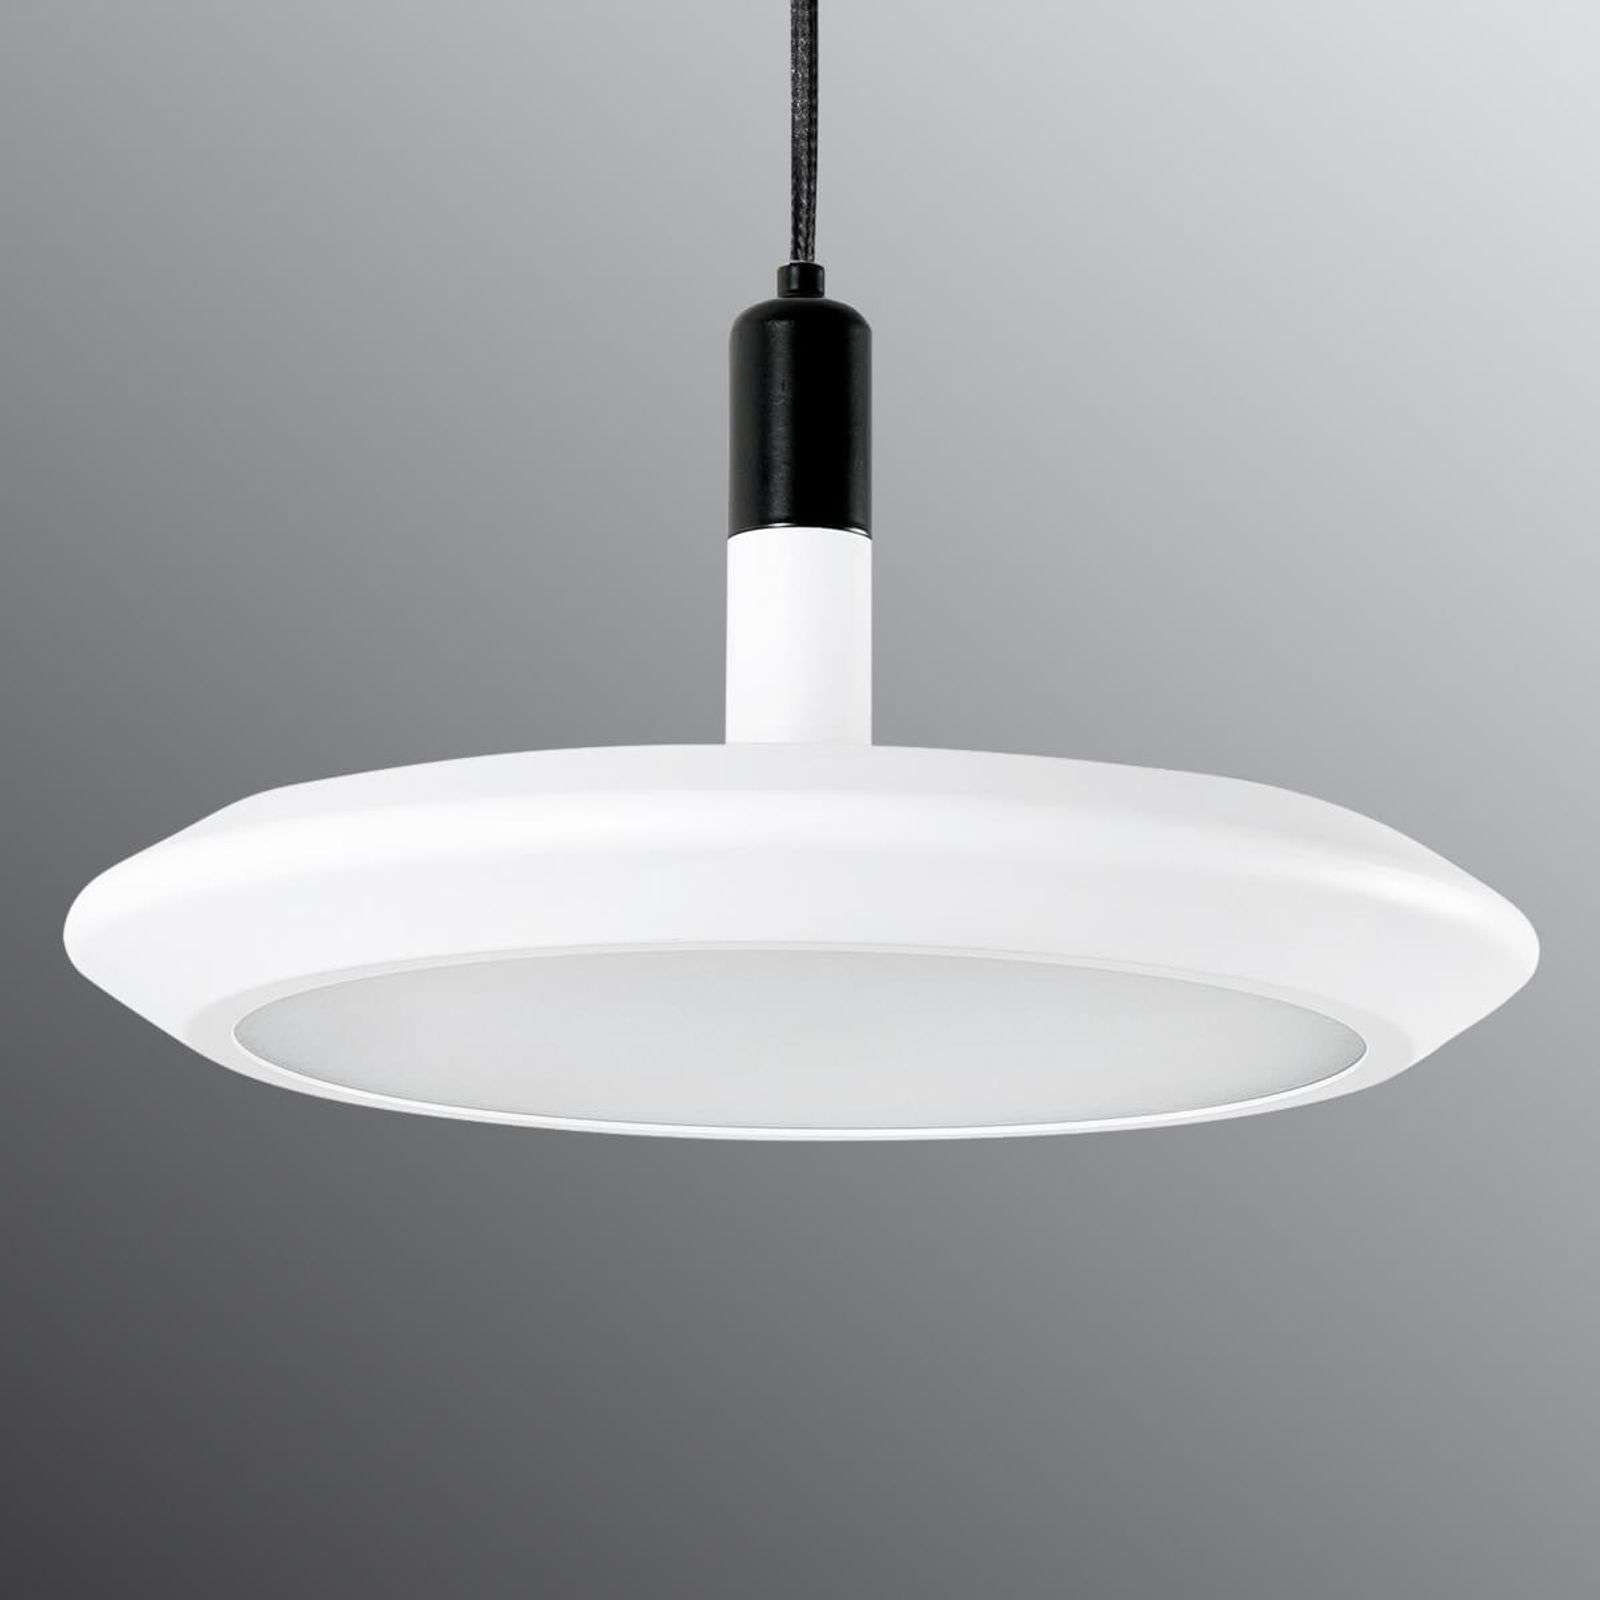 Suspension LED ronde Planet en blanc